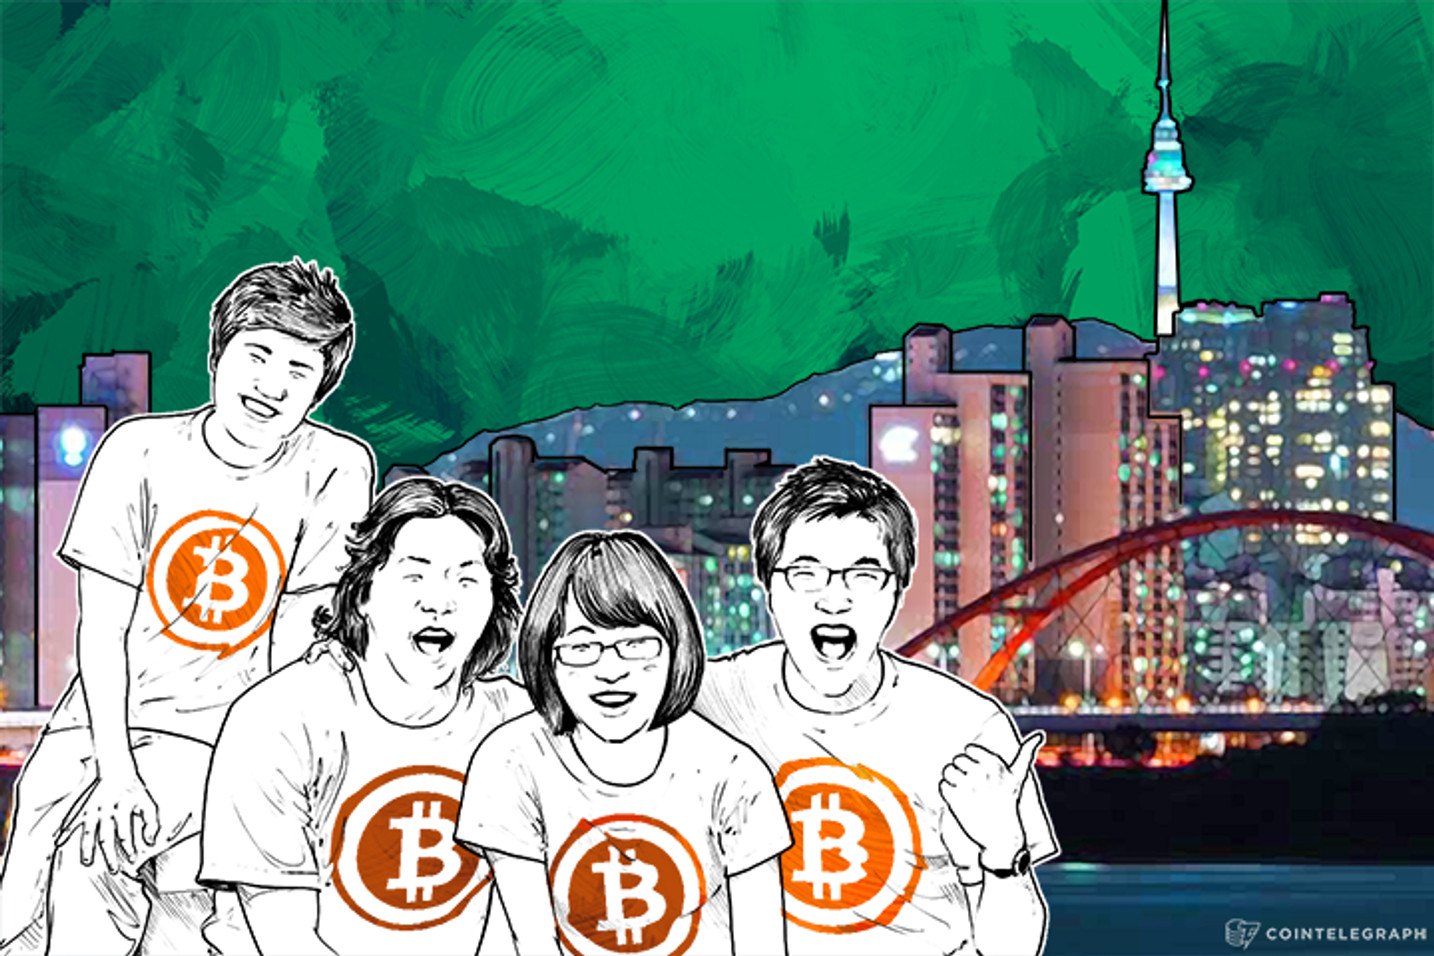 South Korea: Bitcoin Growth Fueled by Startups and Community